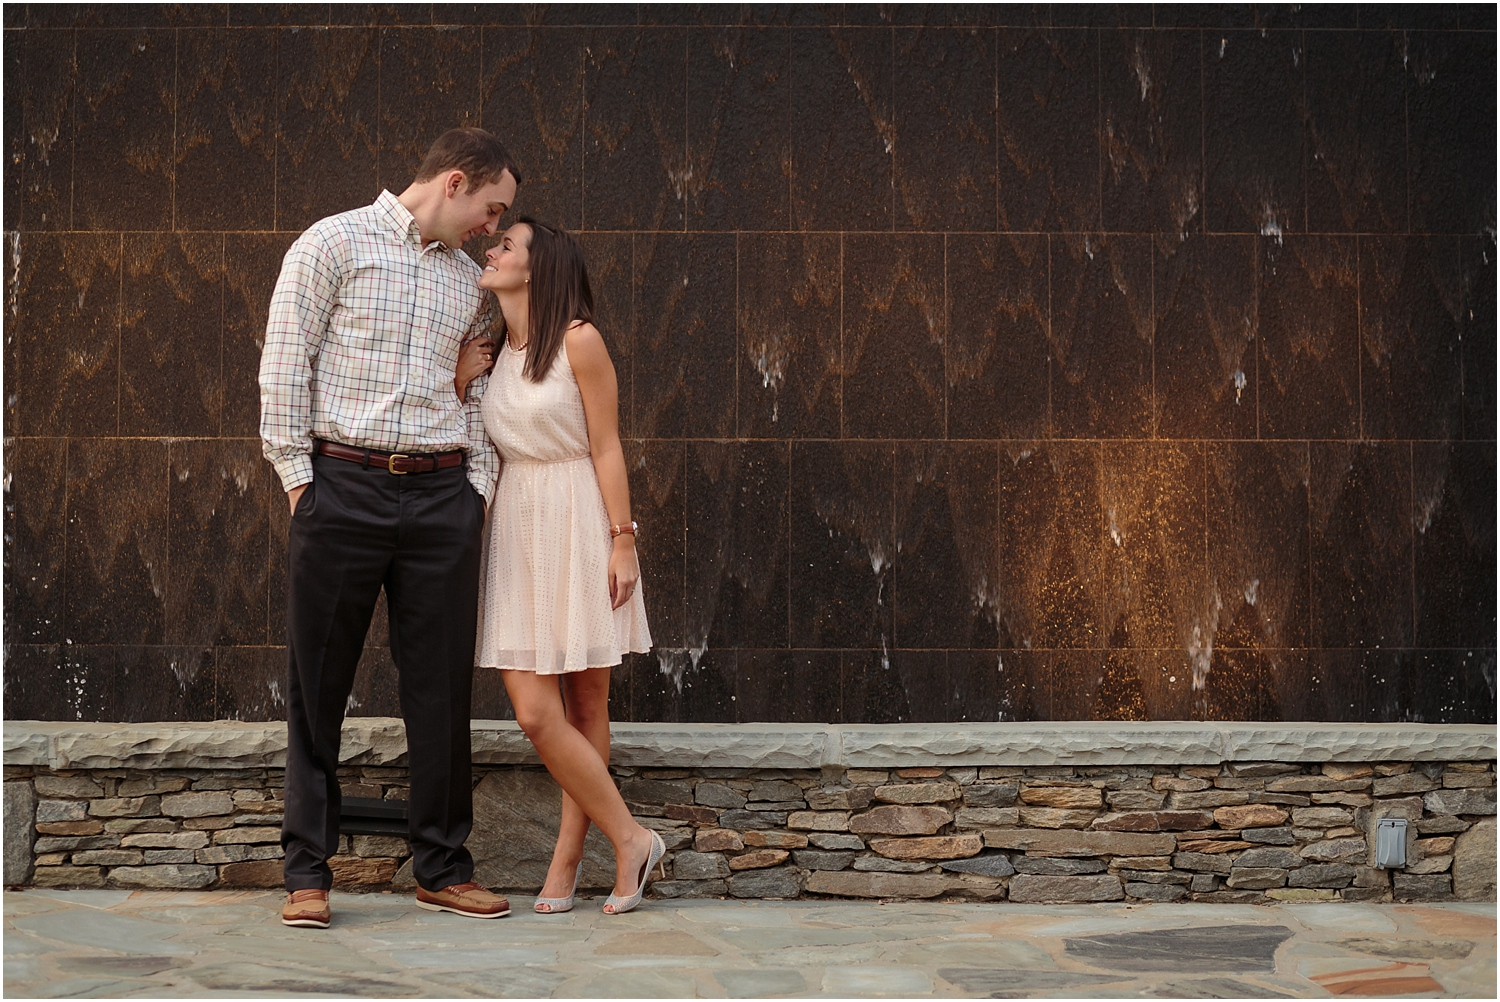 fall-engagement-session-downtown-greenville-photography-18_blog.jpg